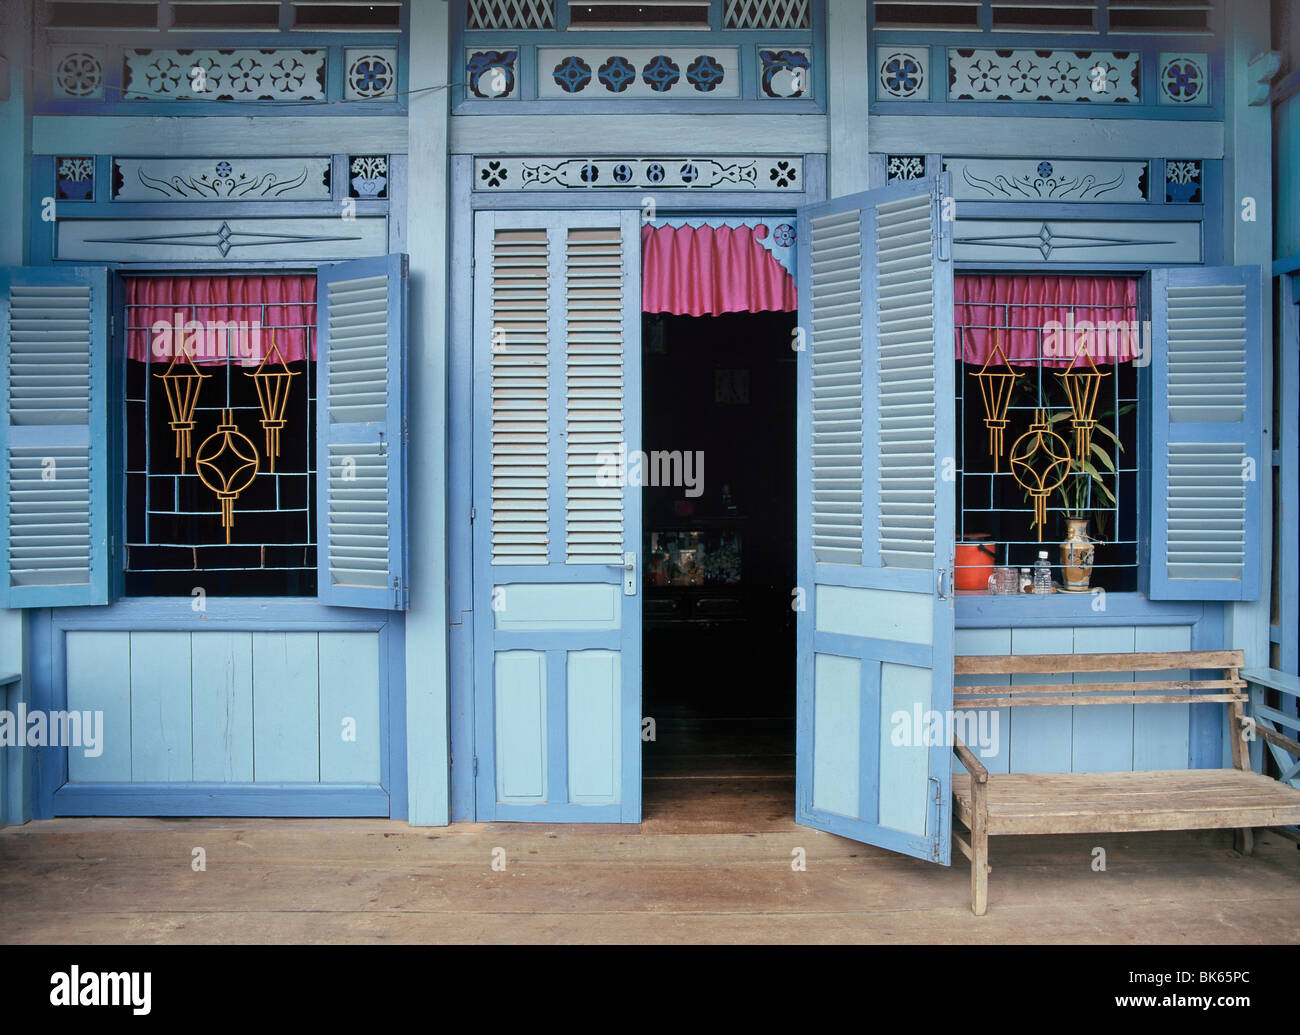 Front of a Vietnamese house on the island of Phu Quoc, Vietnam, Indochina, Southeast Asia, Asia - Stock Image